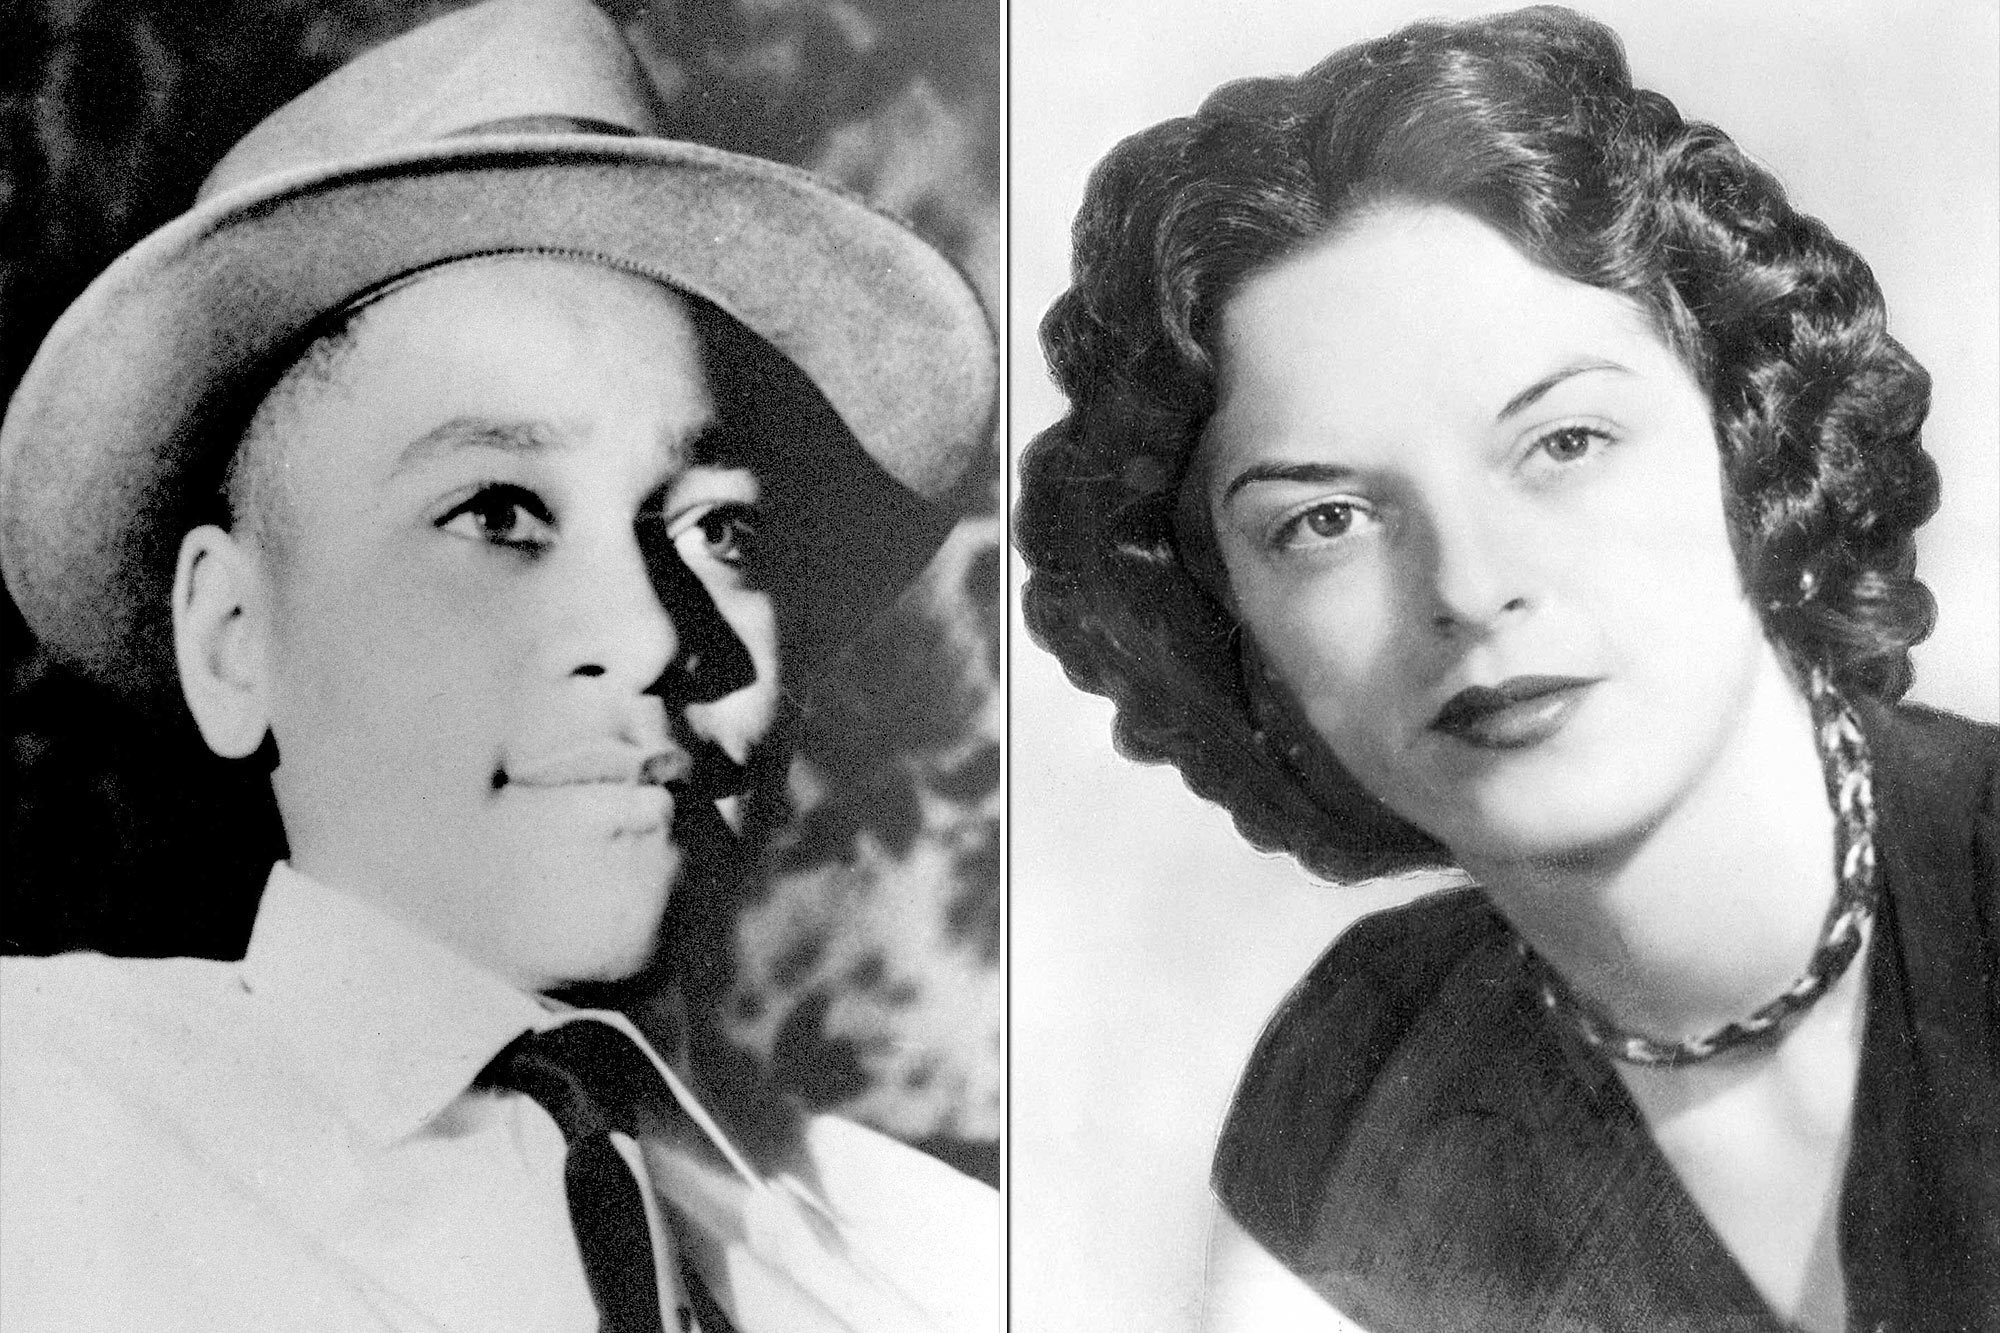 the murder of emmit till essay Parks wrote, the news of emmett's death caused me or murder of emmett till ever faced charges, although the department of justice reopened the case in 2004.